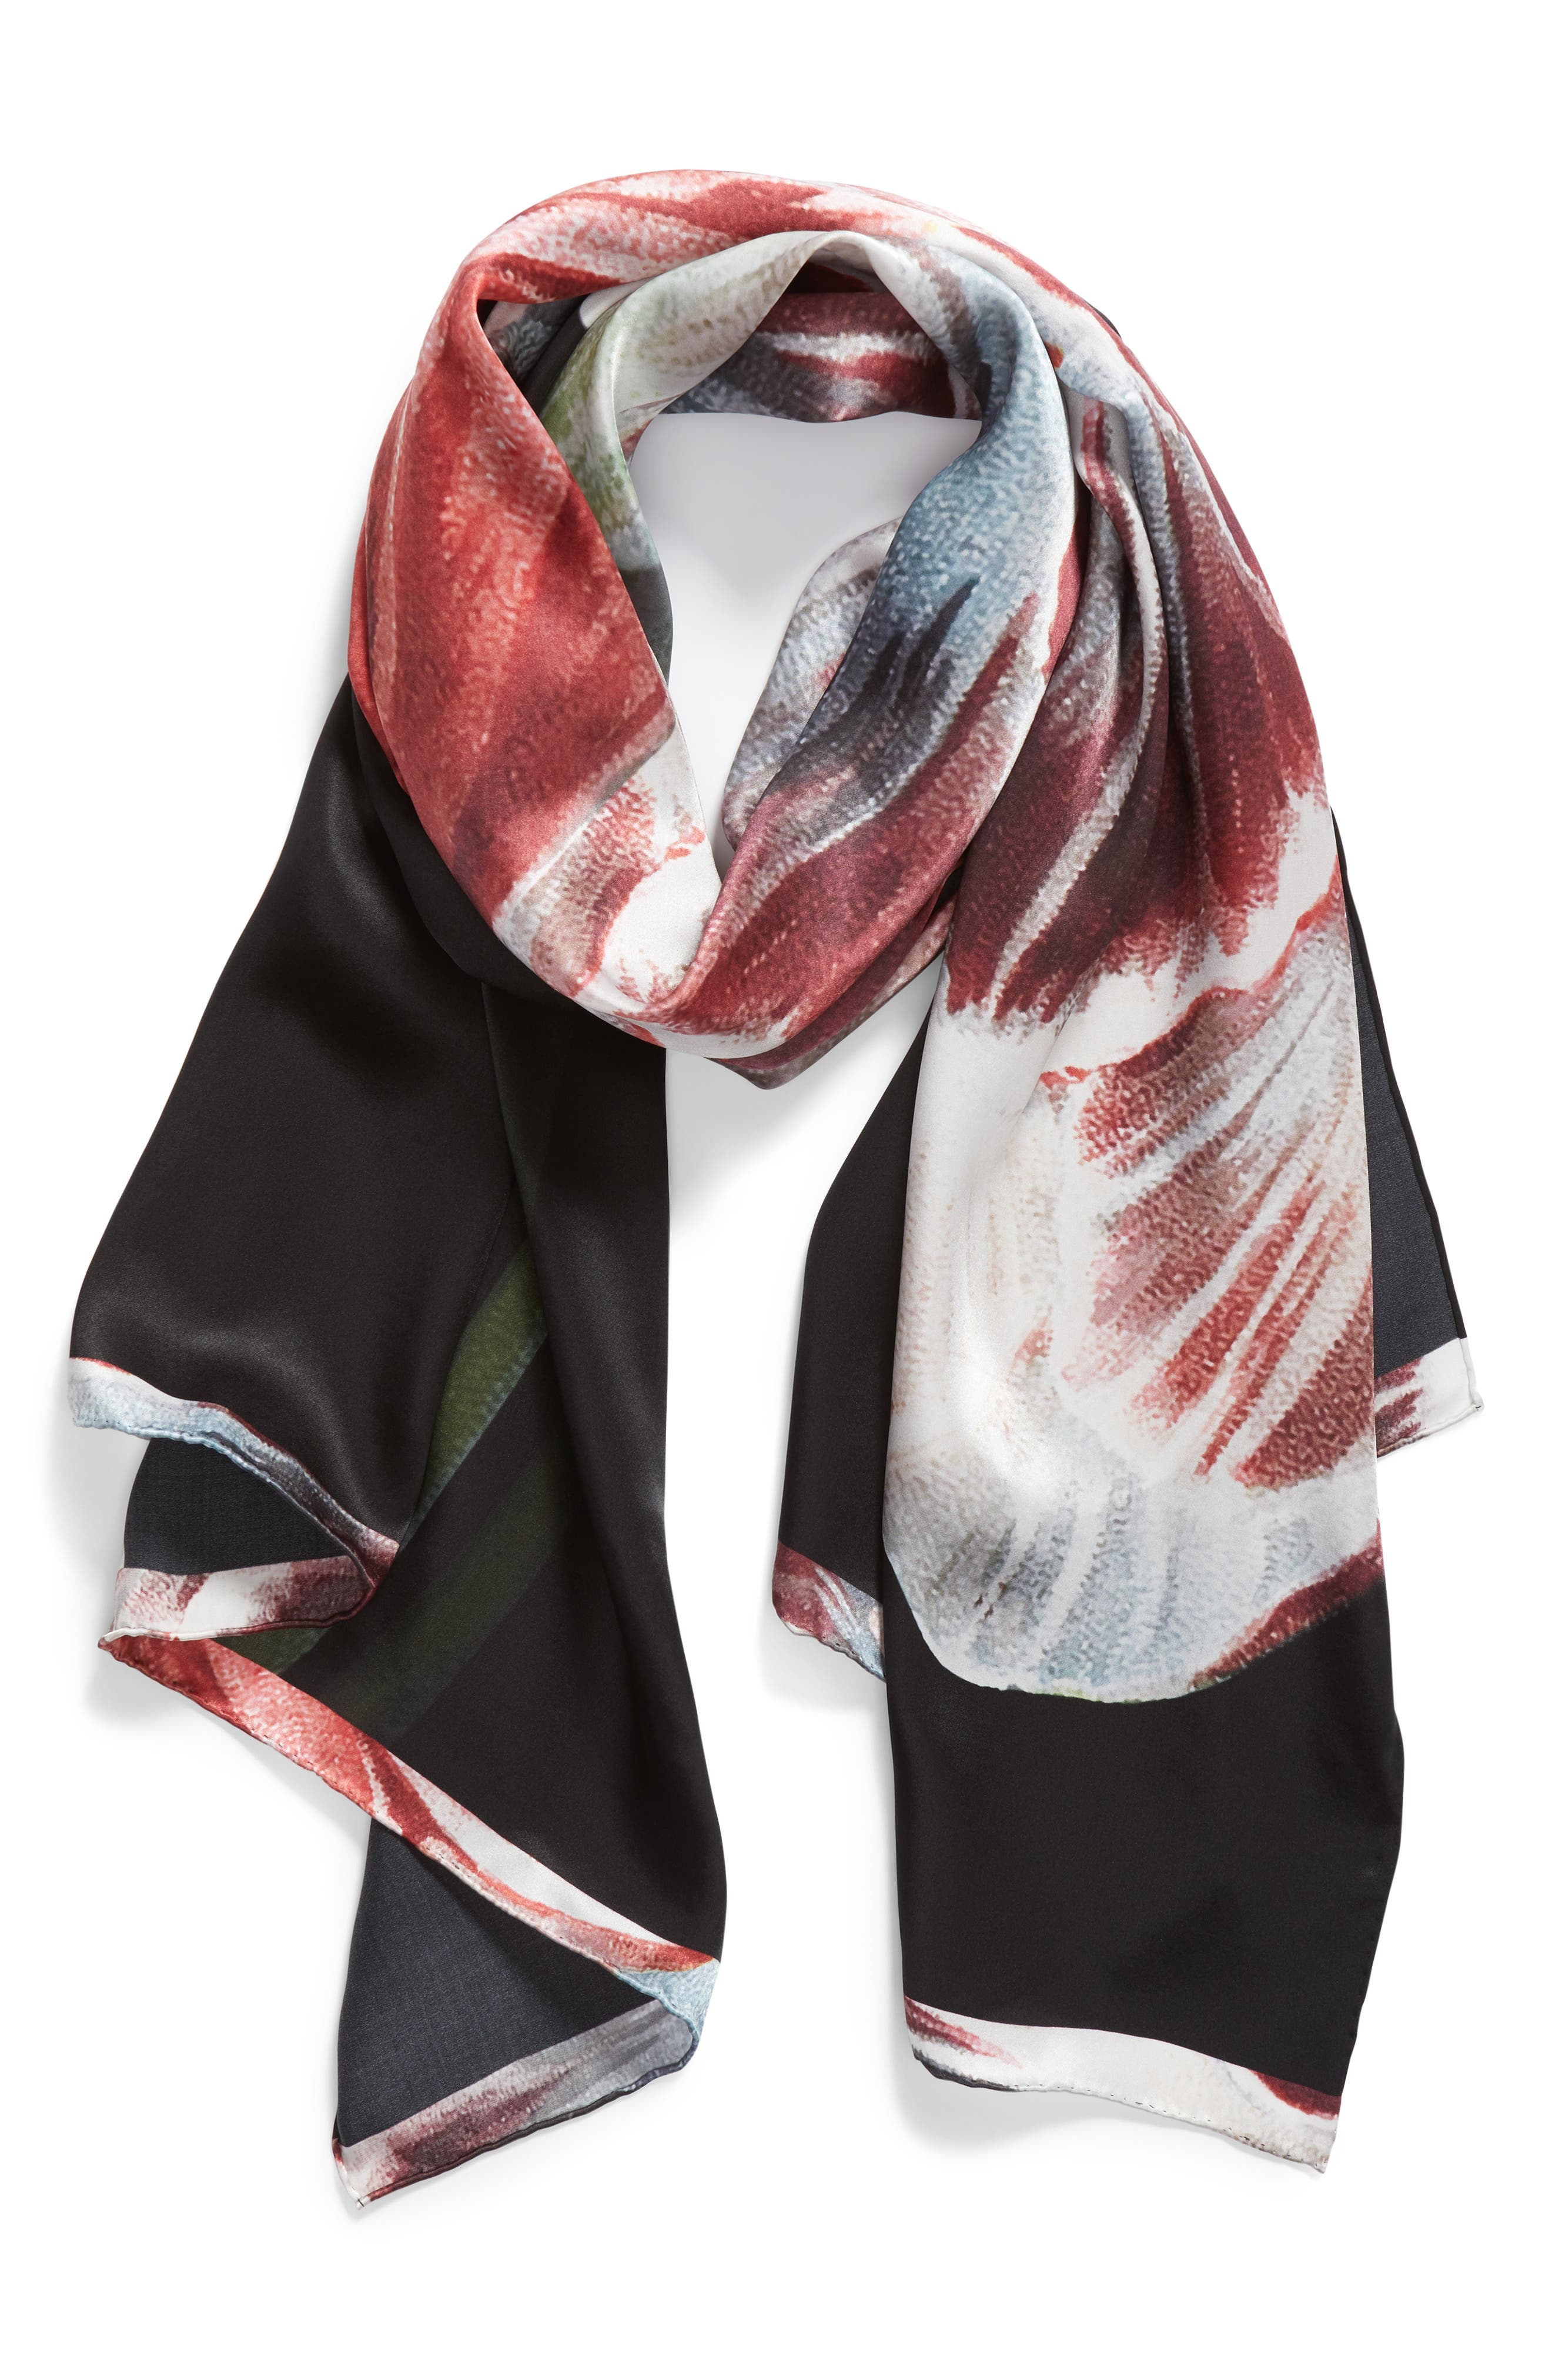 Tranquility Long Silk Scarf,                             Alternate thumbnail 2, color,                             001